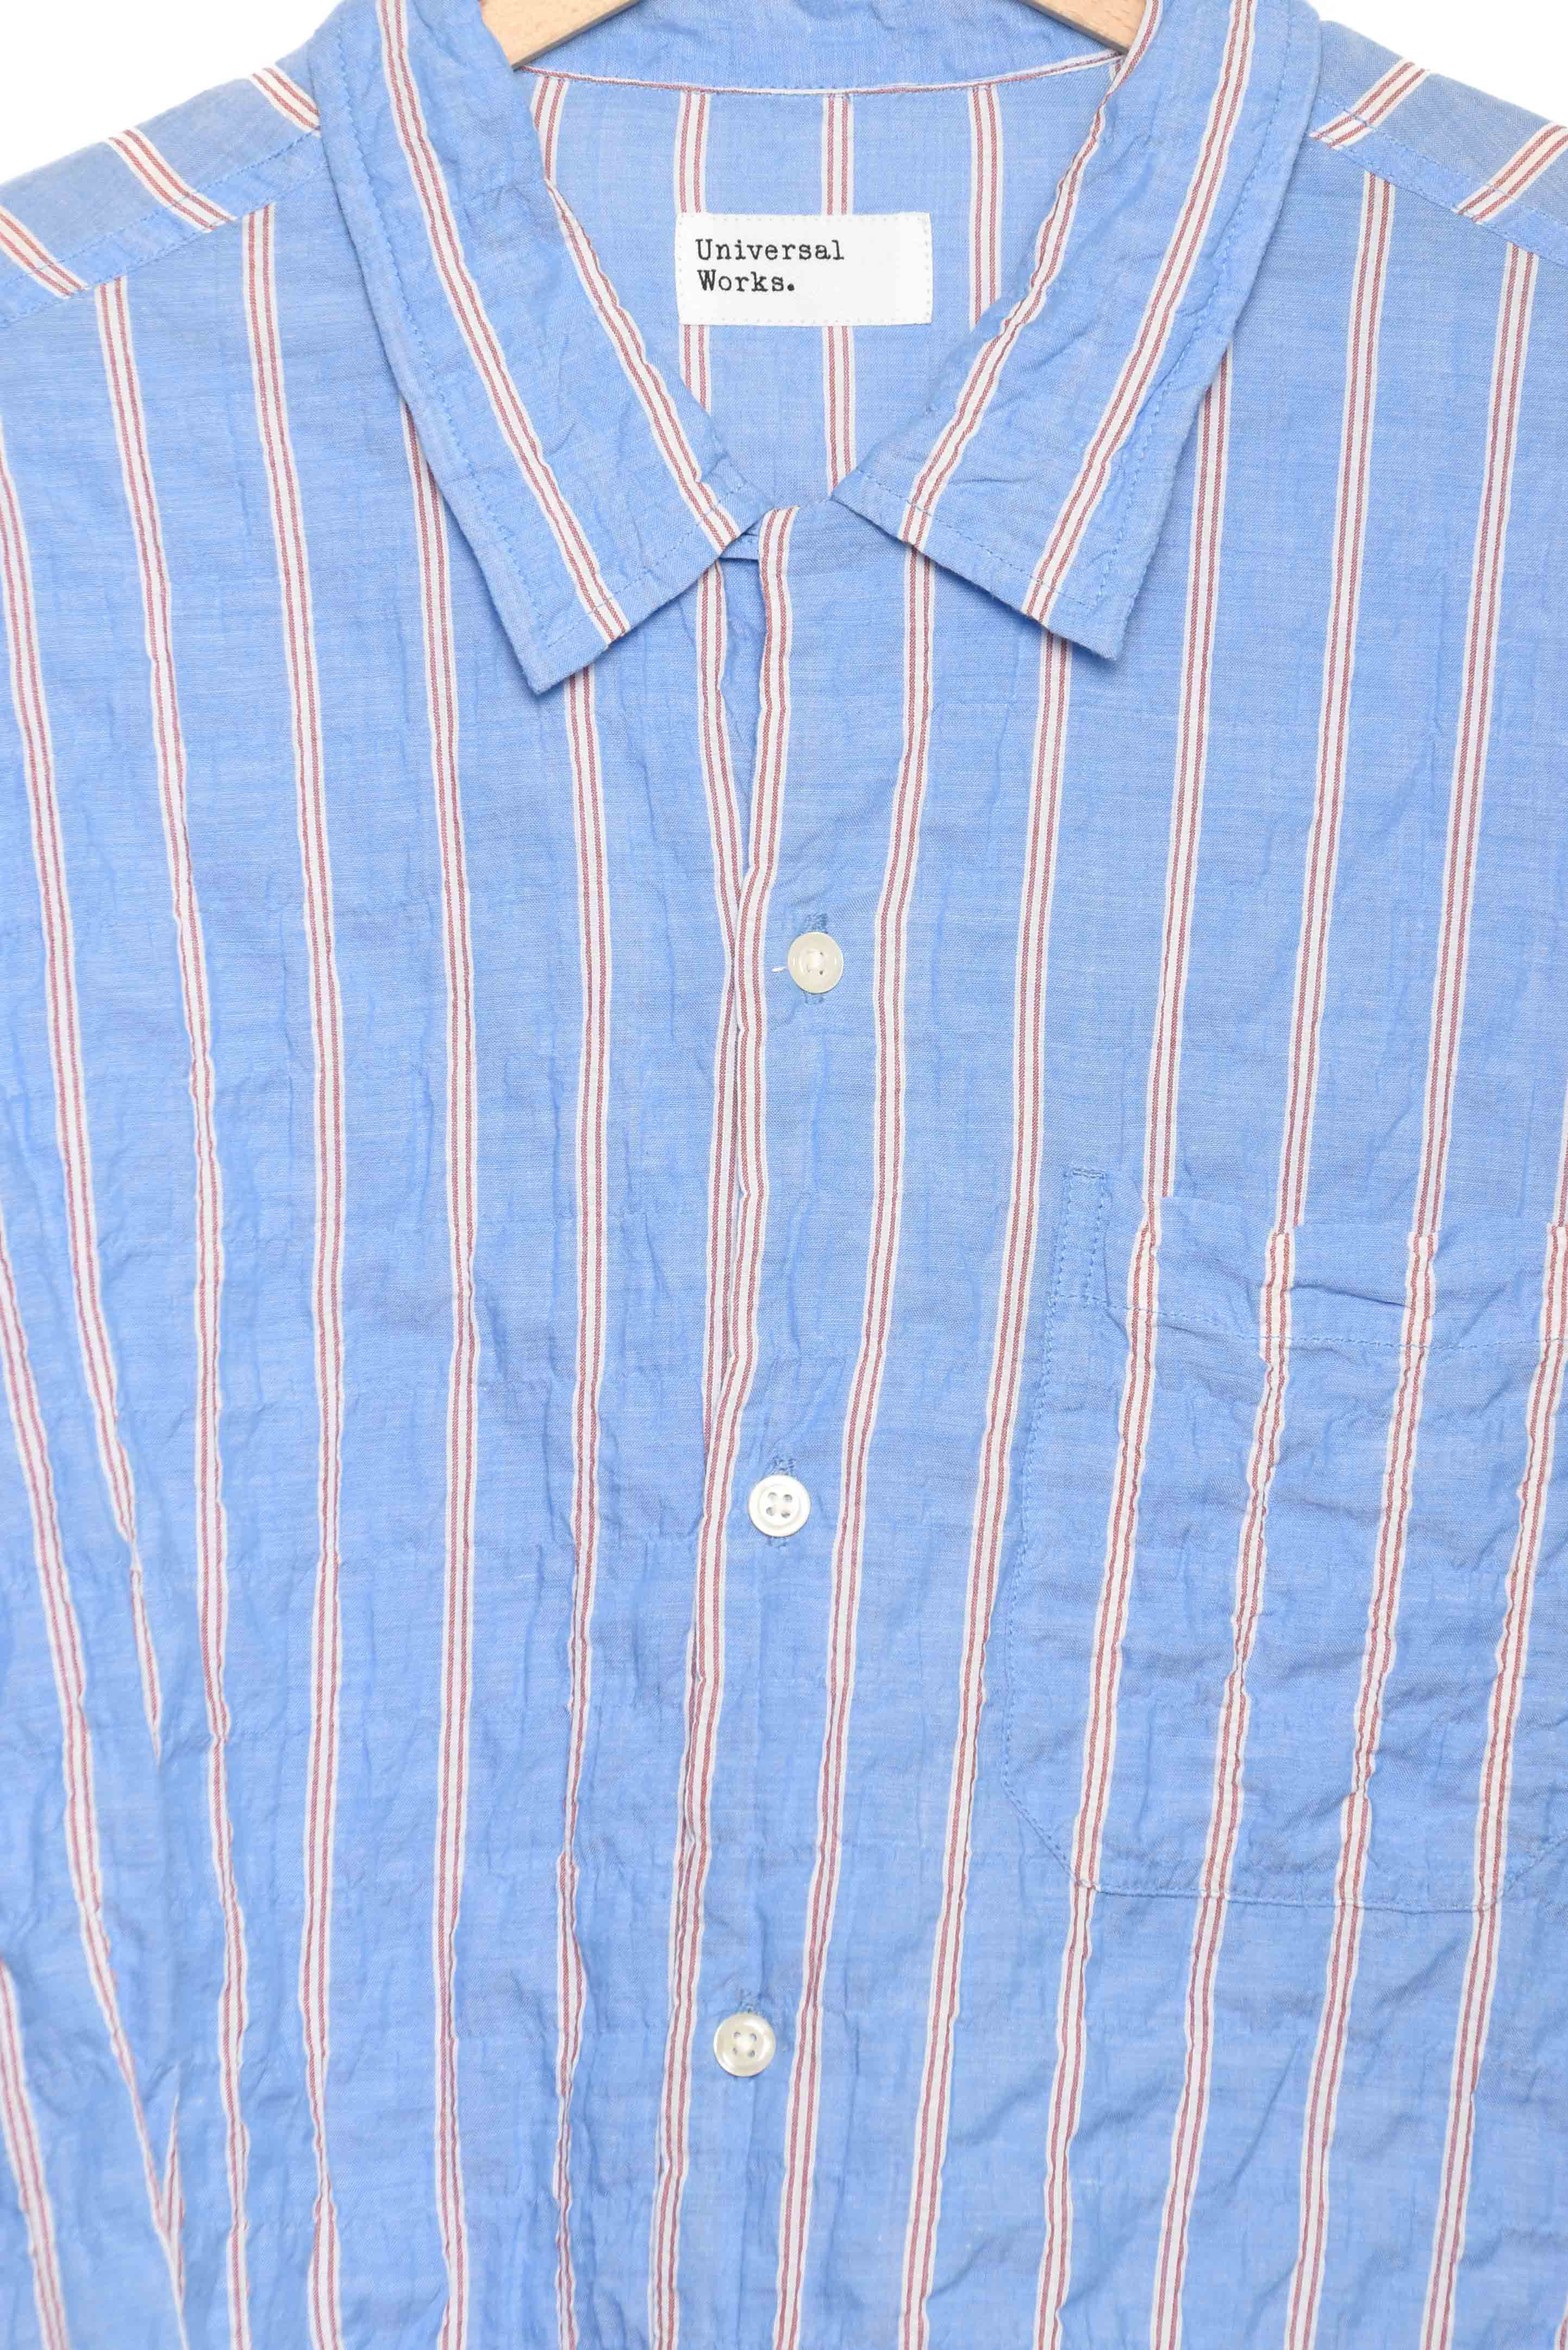 Universal Works Road Shirt pale blue 22185